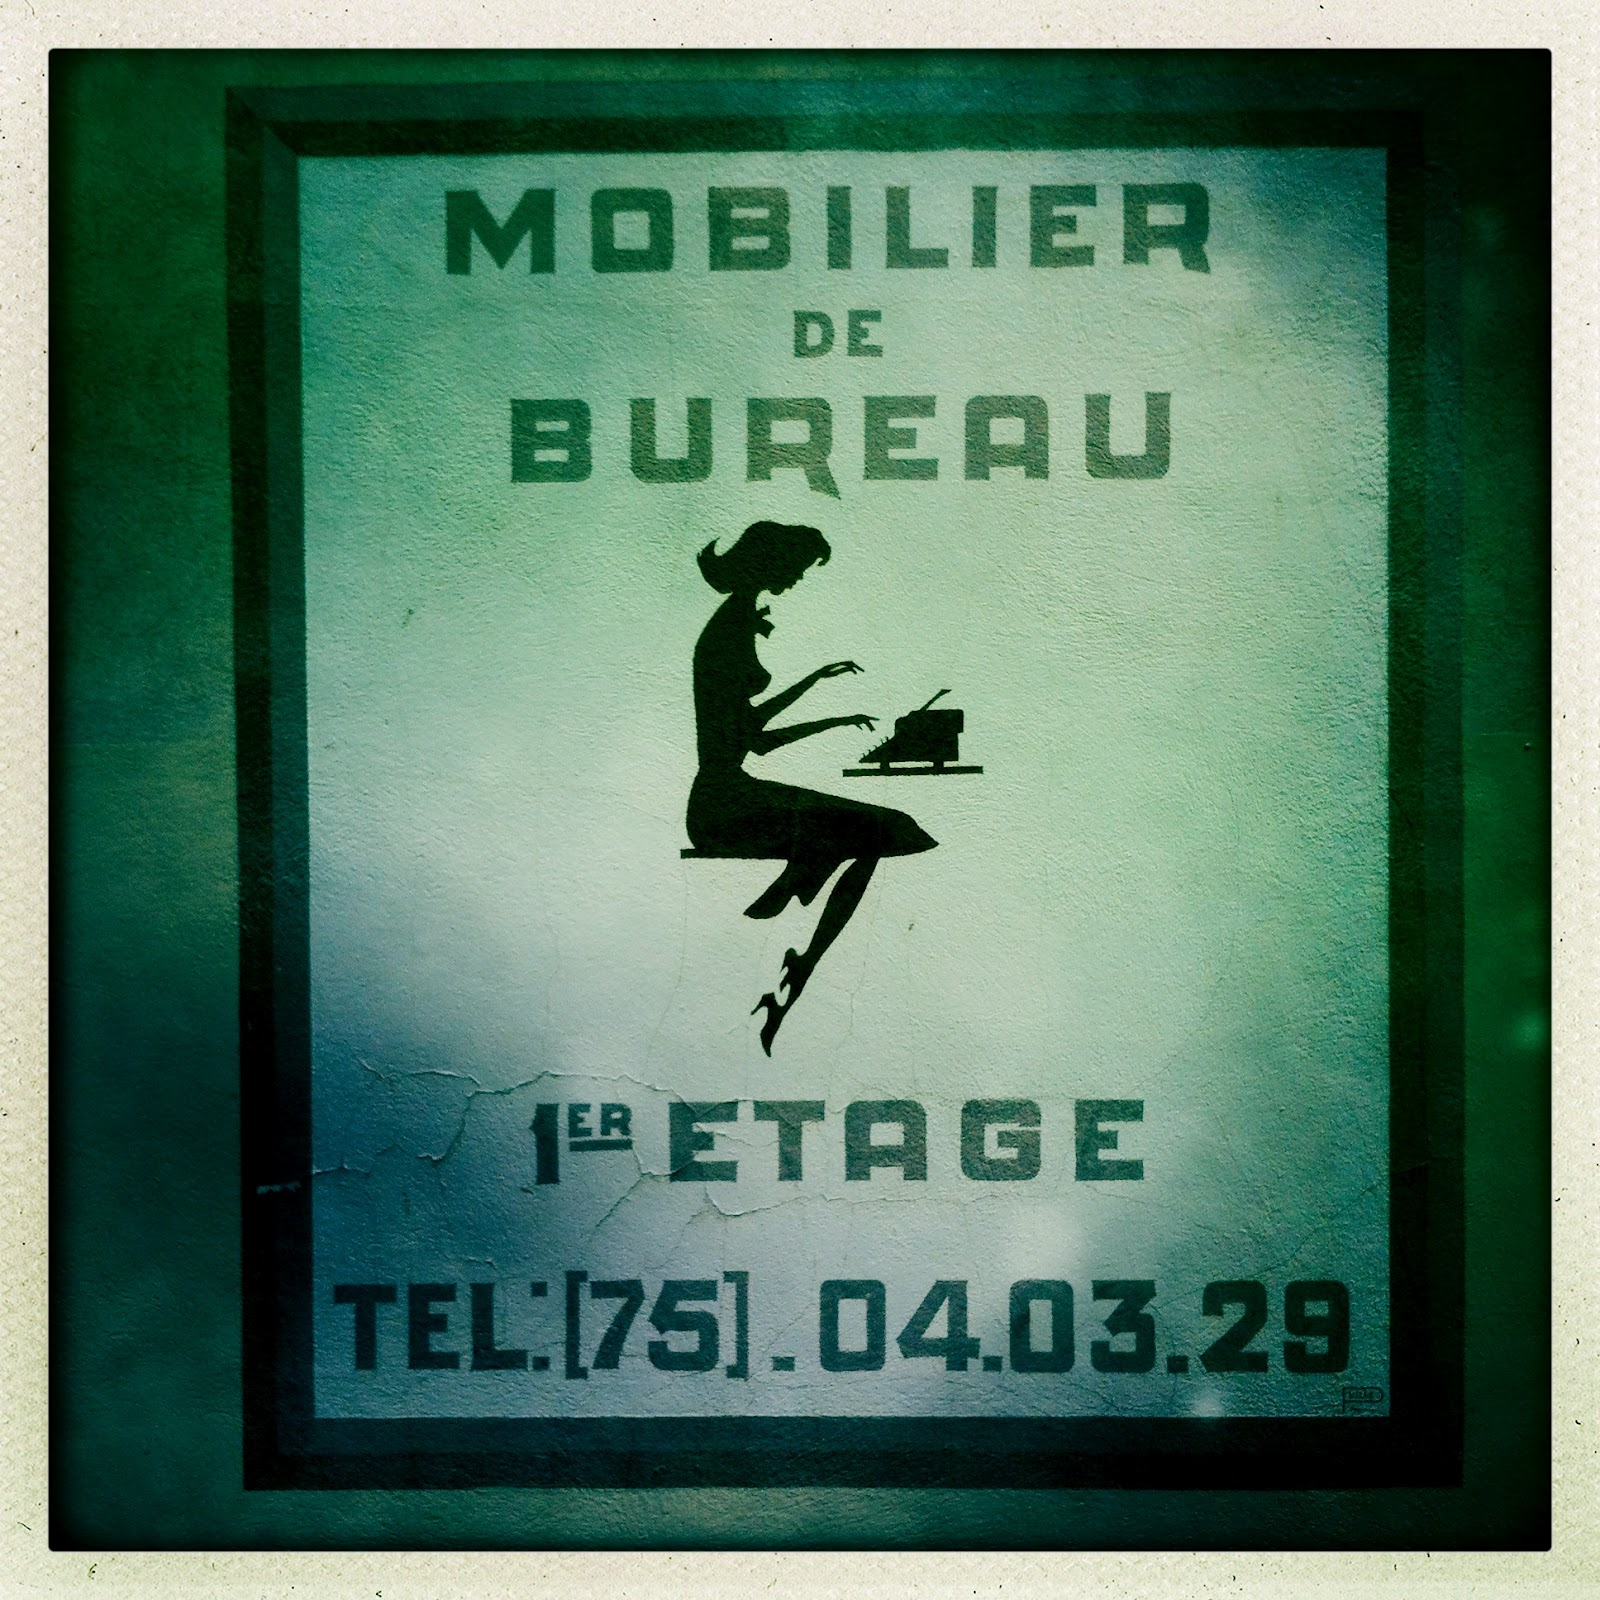 Mobilier de bureau my provence and other iphone photos - Mobilier de bureau ...